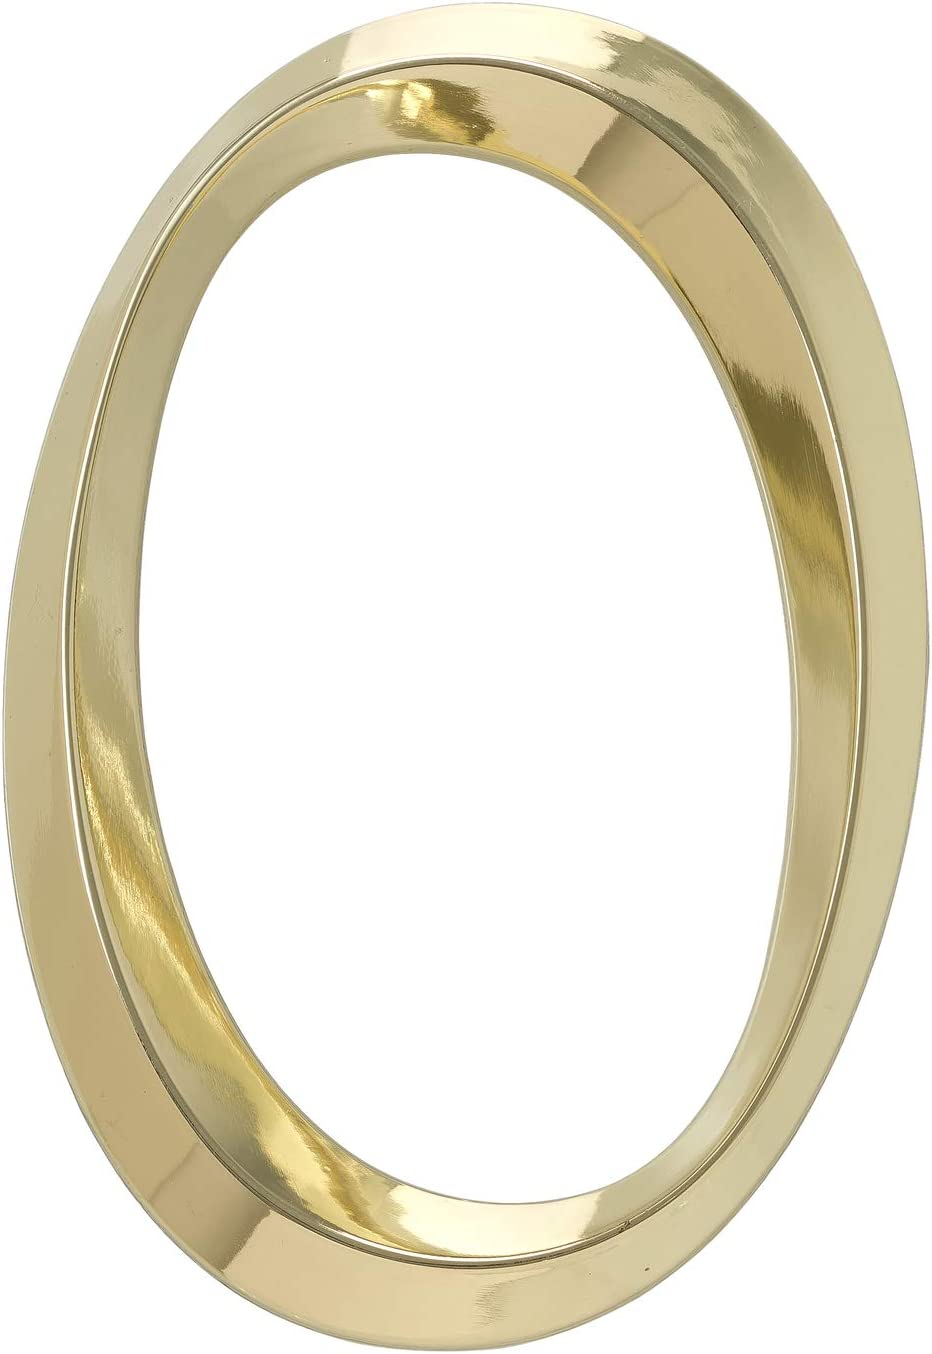 Whitehall Products Classic 6 Inch number 0 Polished Brass, 6 Inch